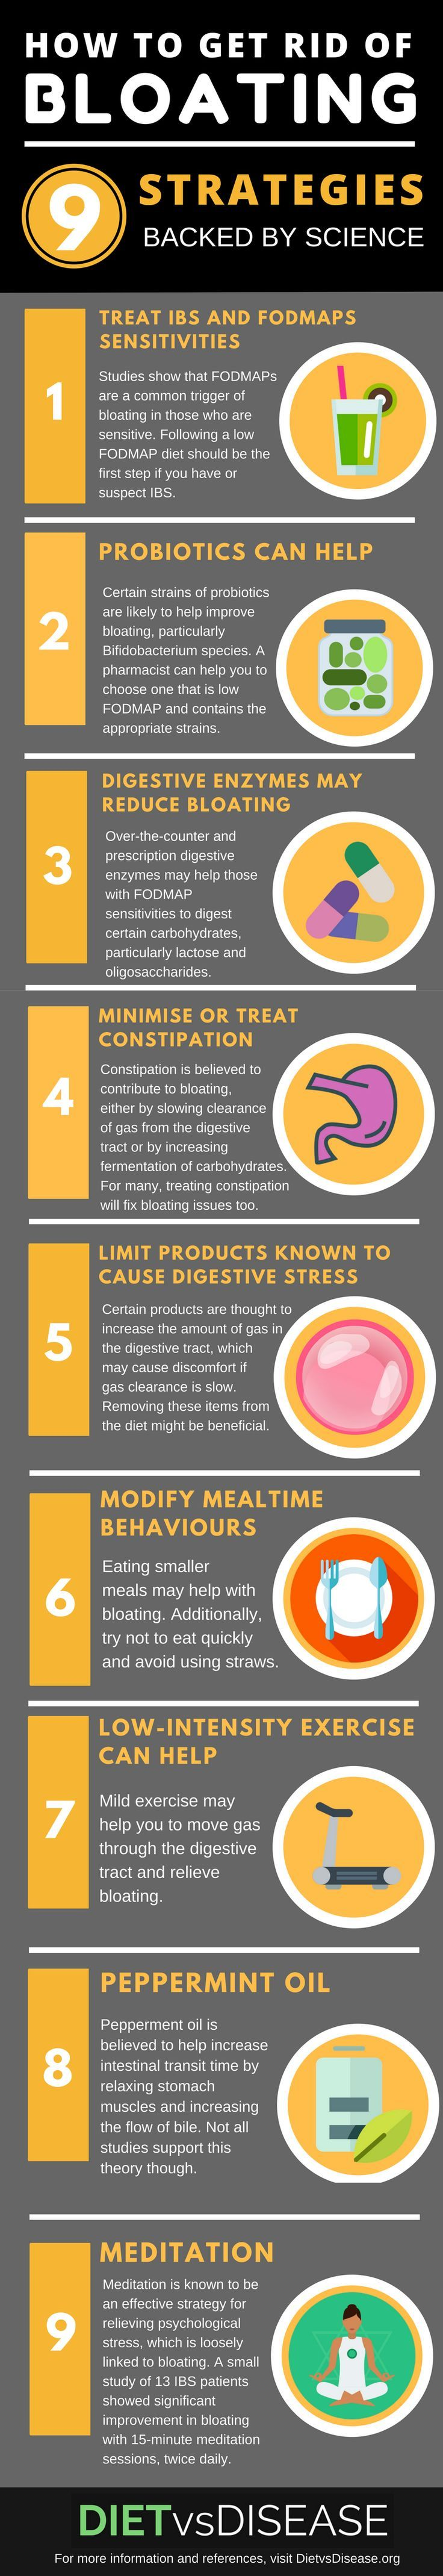 Do you experience stomach bloating after meals? This article explores 9 ways to get rid of digestion problem like bloating, including the use of a low FODMAP diet, probiotics, enzymes and peppermint oil